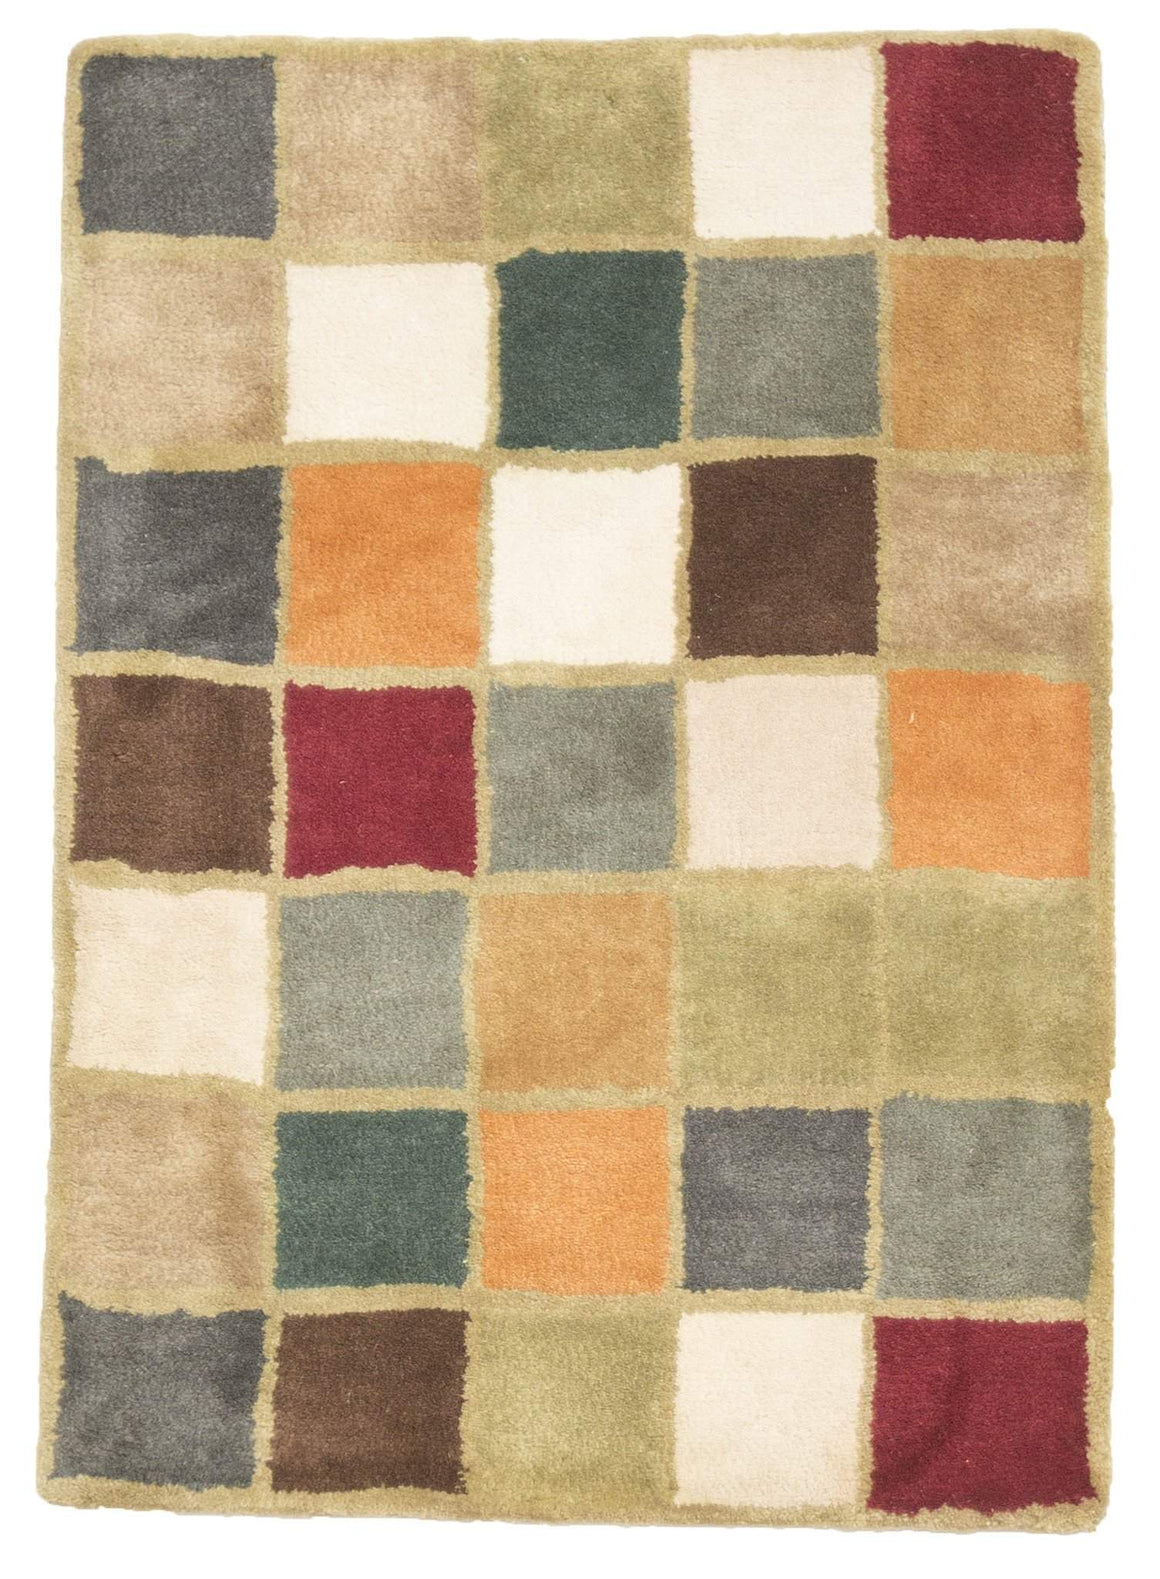 2' x 3' Modern Multi Color Wool Small Rug by Rug Shop and More Area Rugs - Rug Shop and More